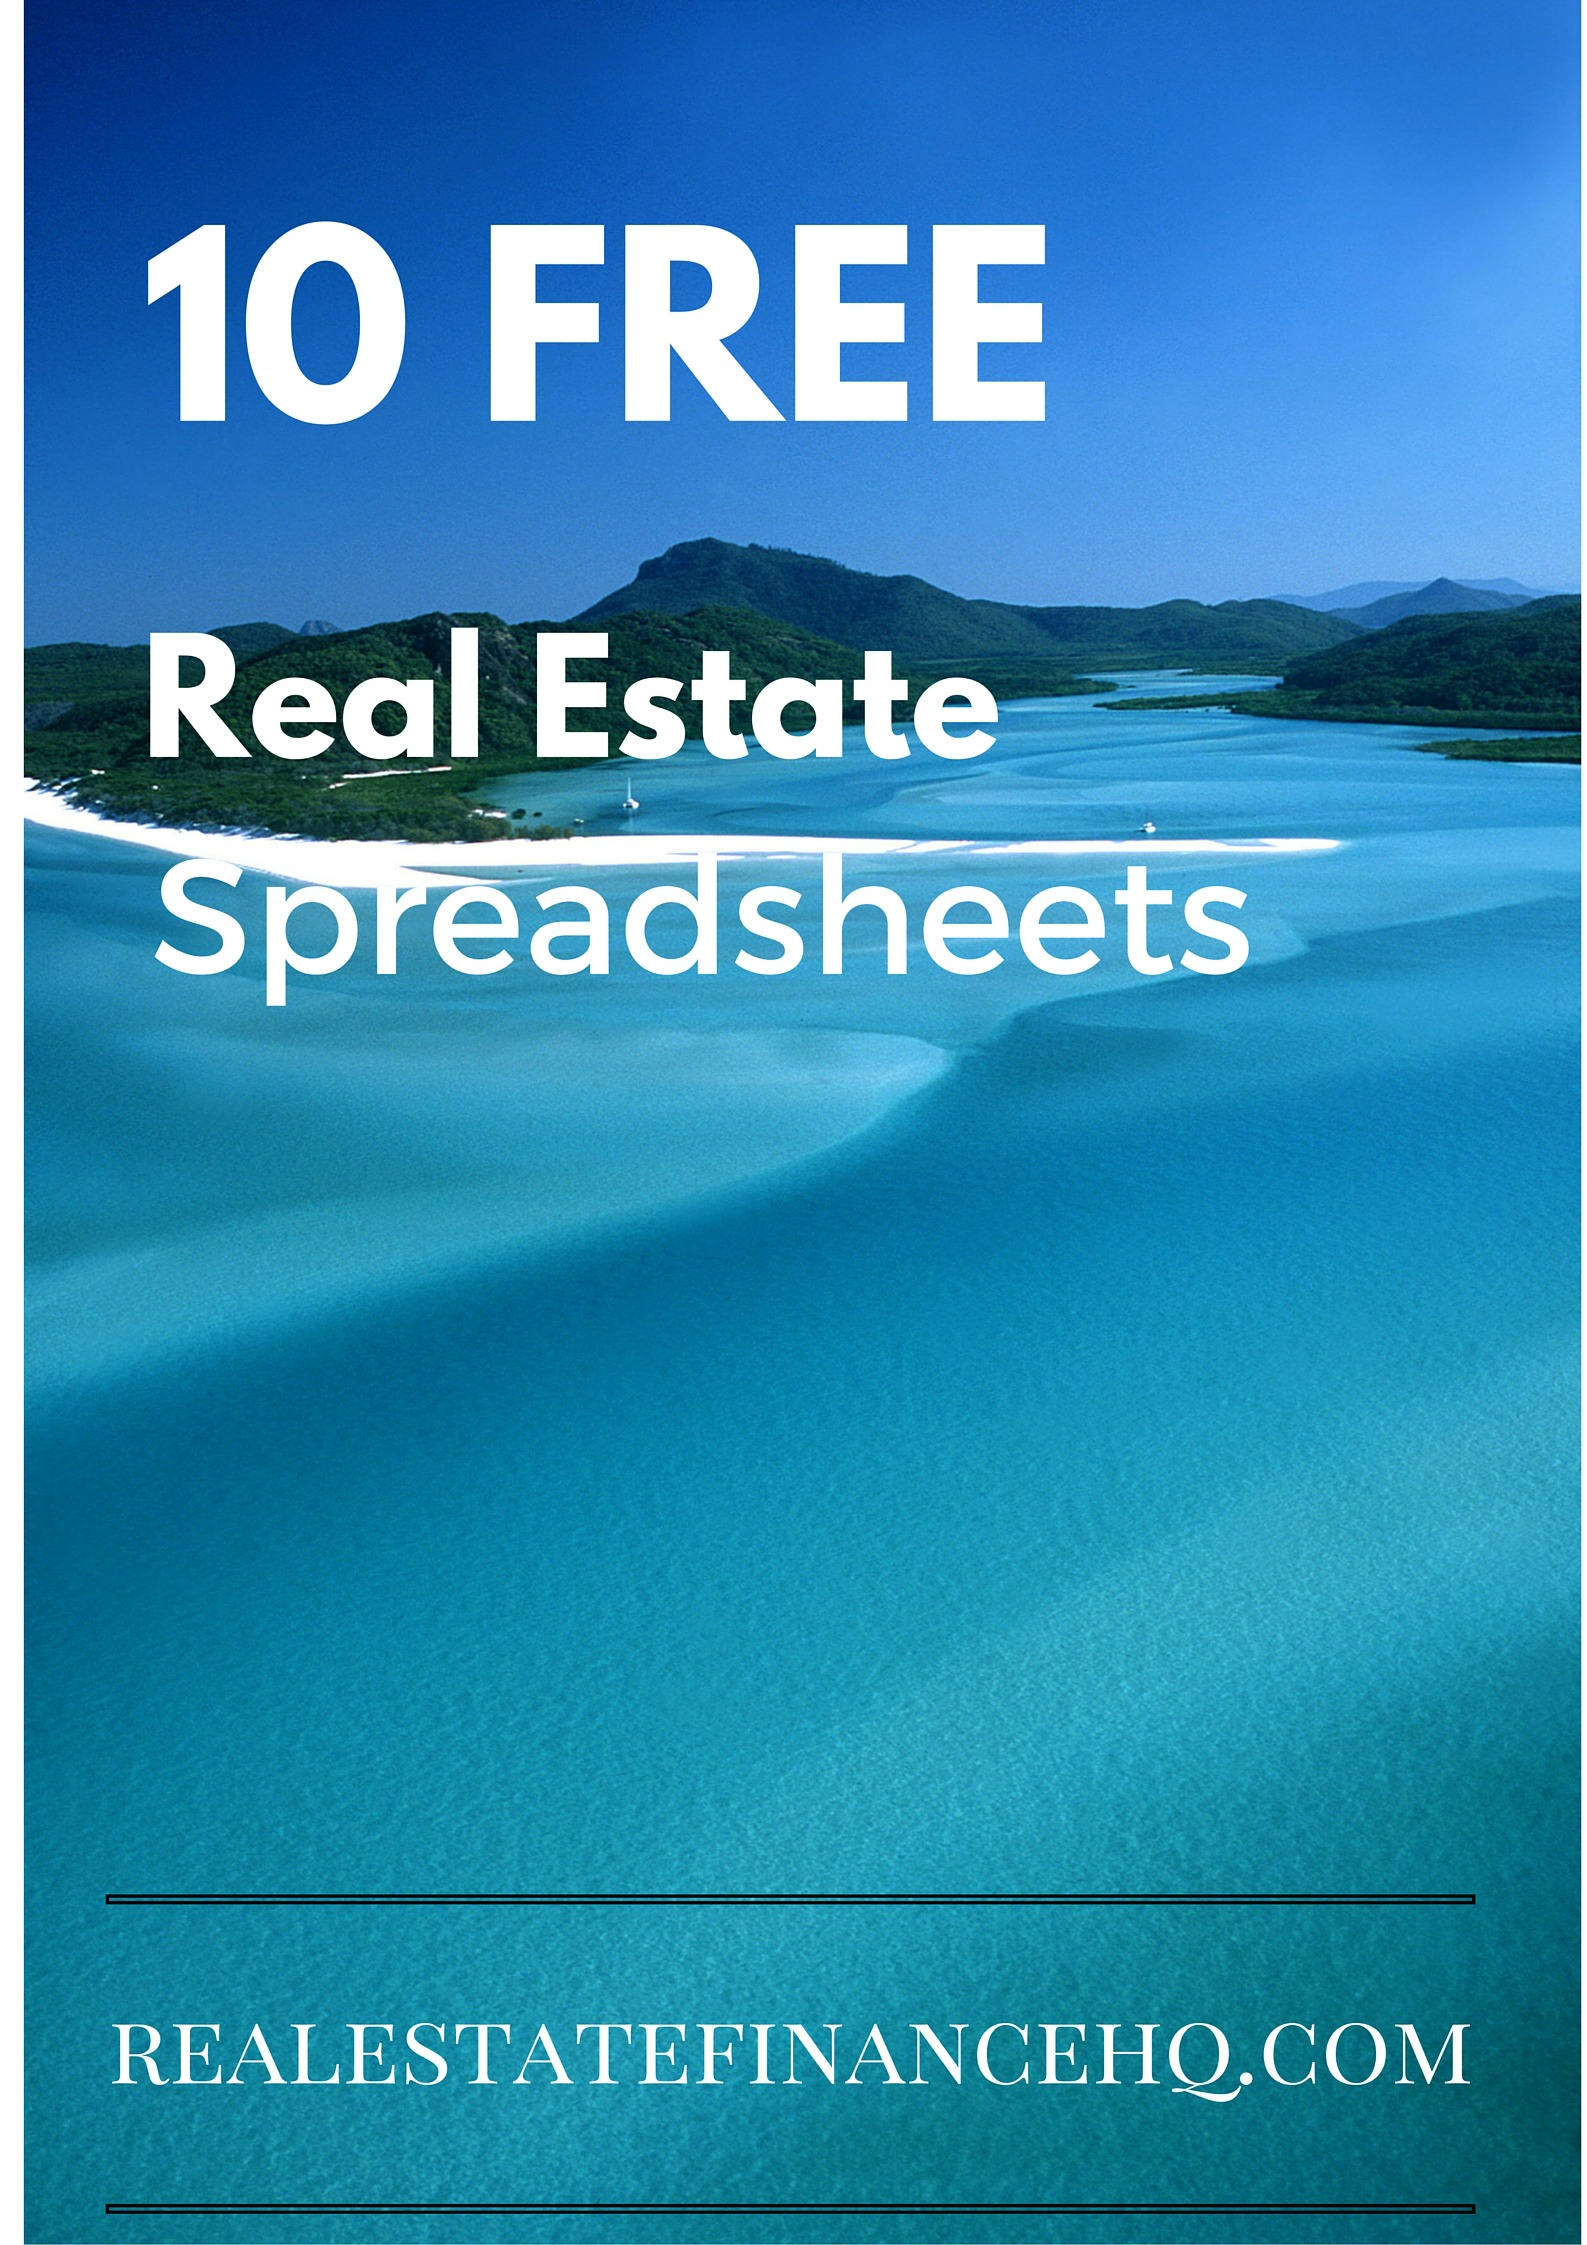 free-real-estate-finance-spreadsheets-.jpg